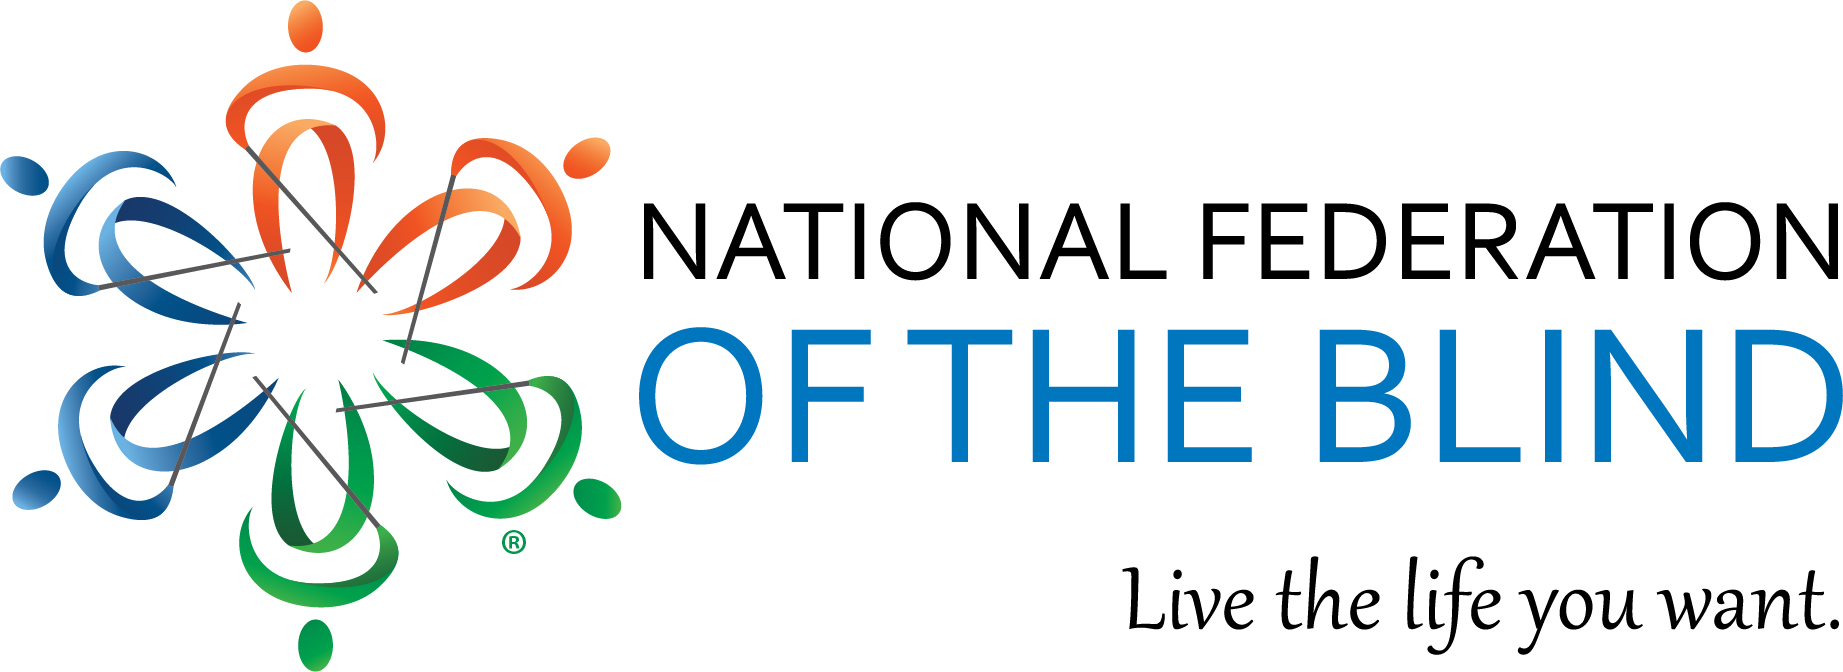 National Federation of the Blind logo, live the li